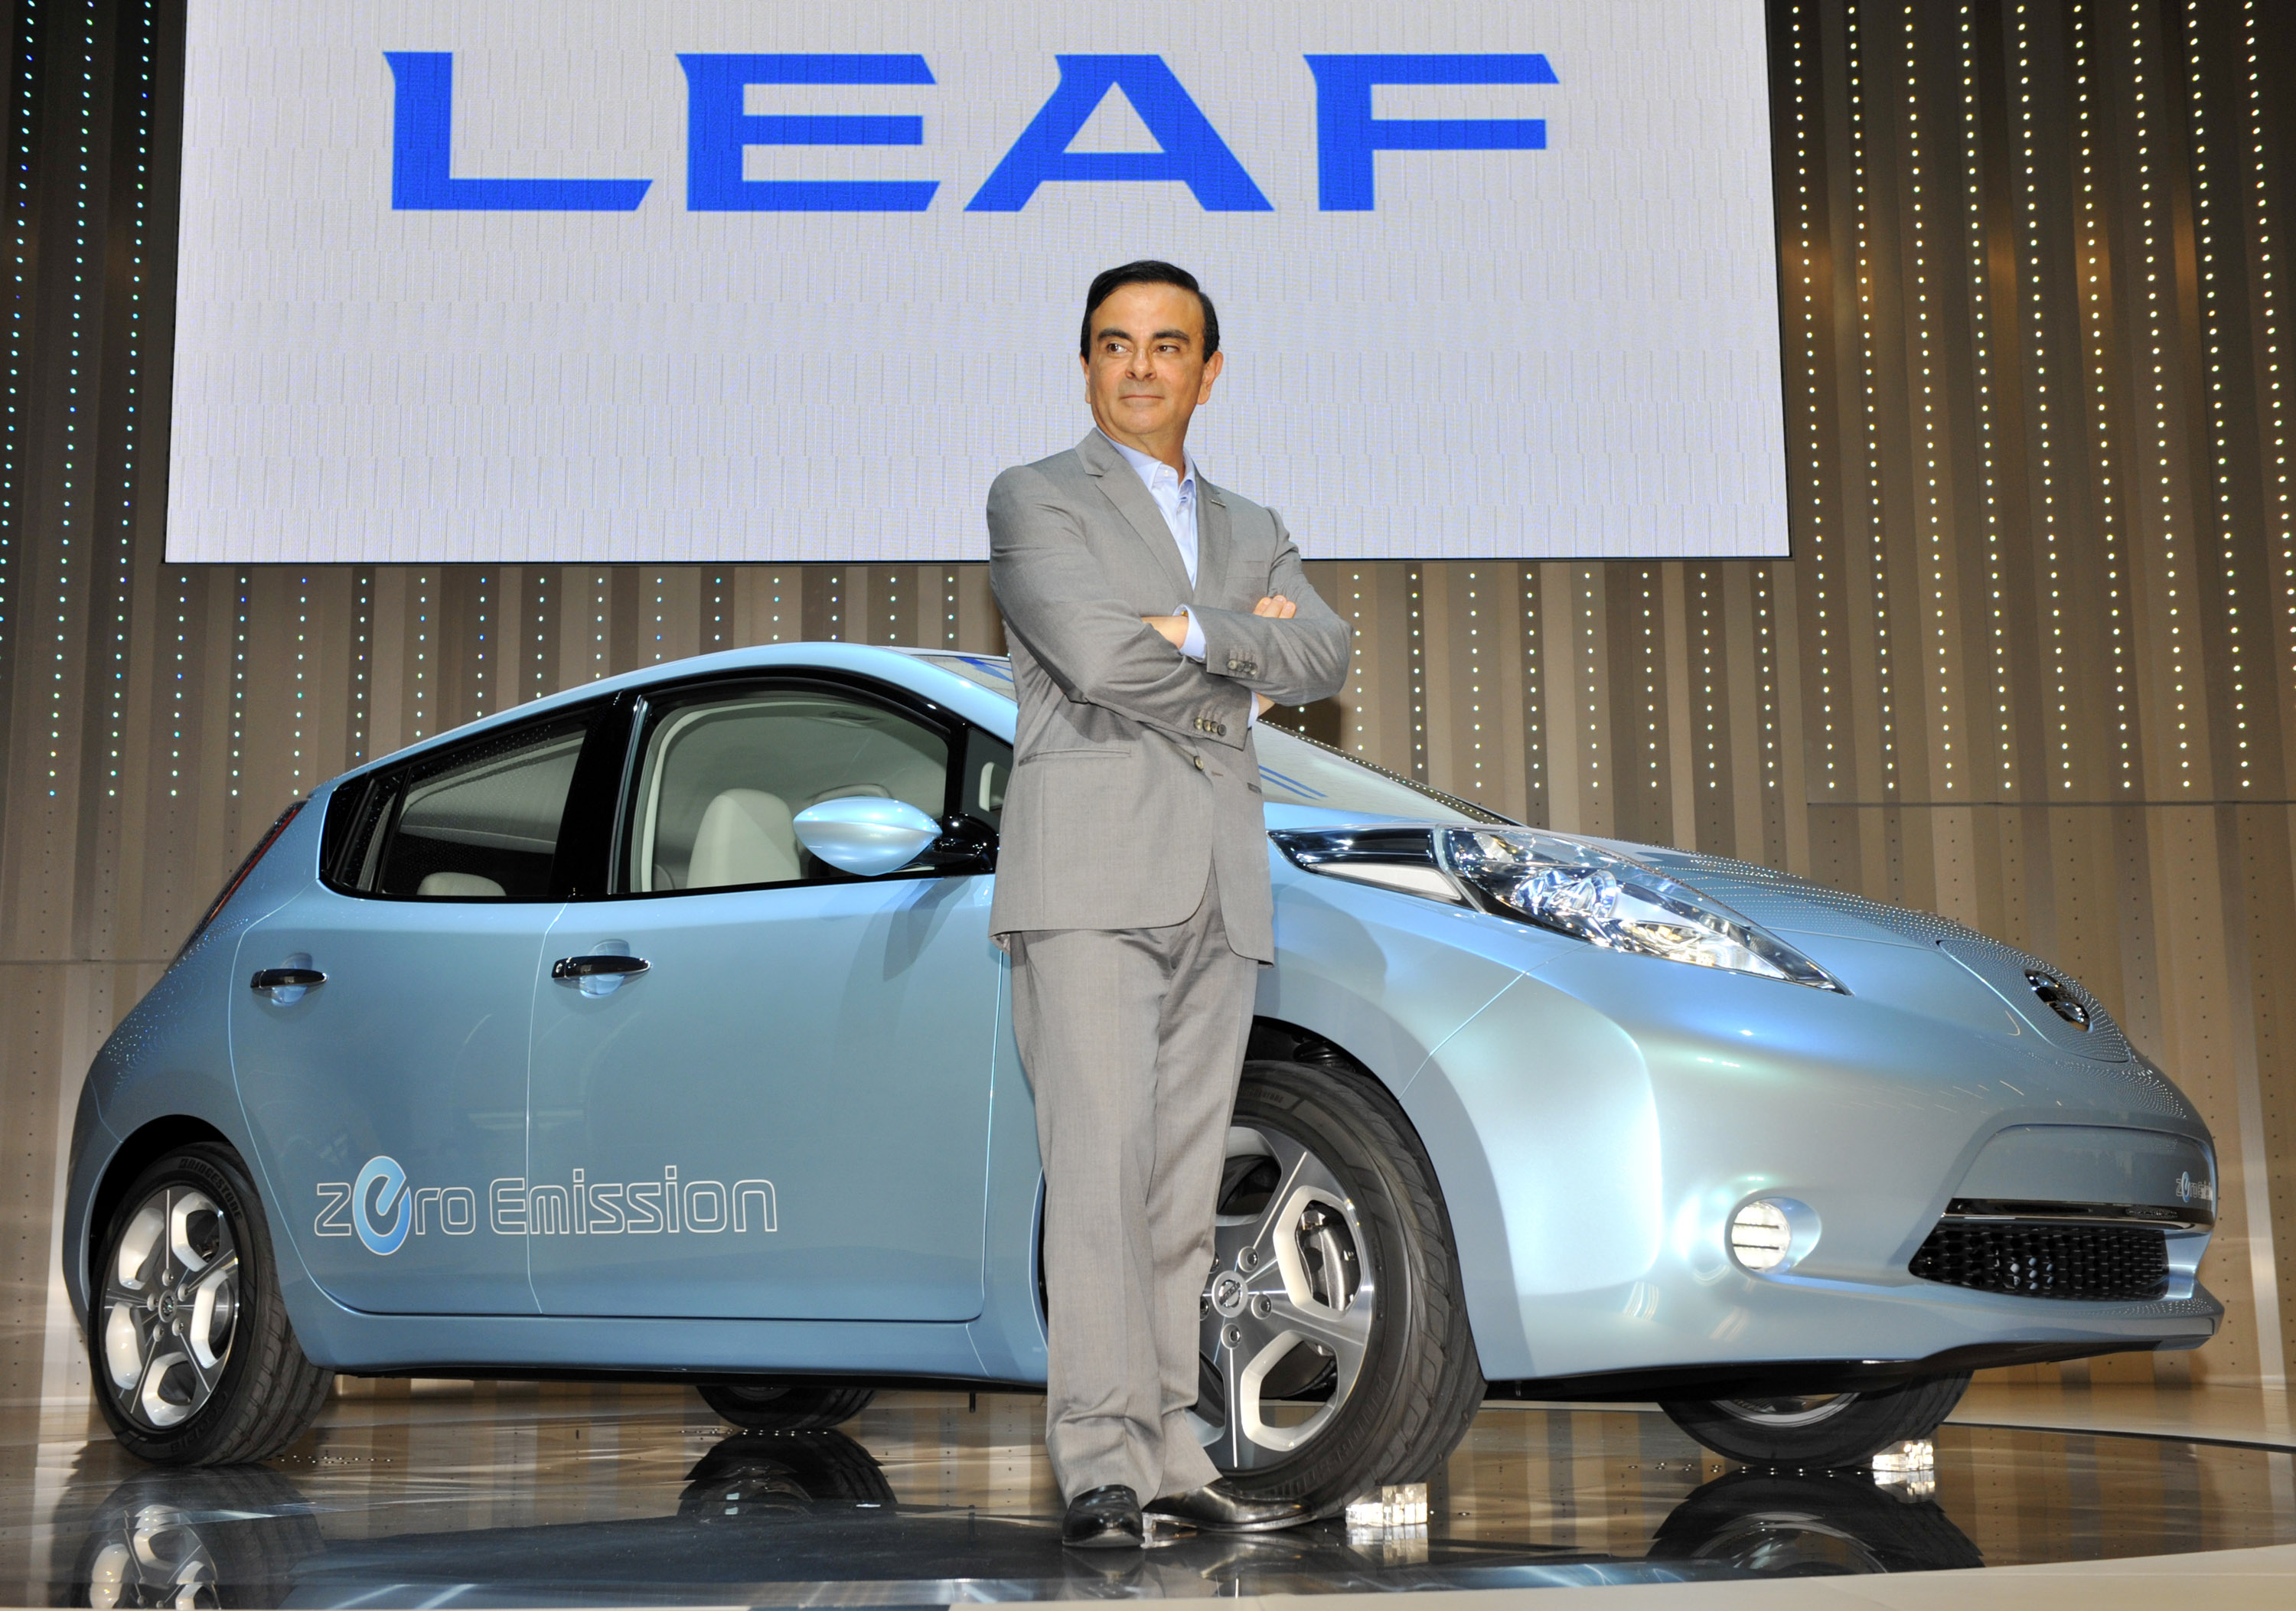 Former president and chief executive officer of Nissan, Carlos Ghosn, introduces the  Leaf  electric vehicle on Aug. 2, 2009, in Yokohama, Japan.